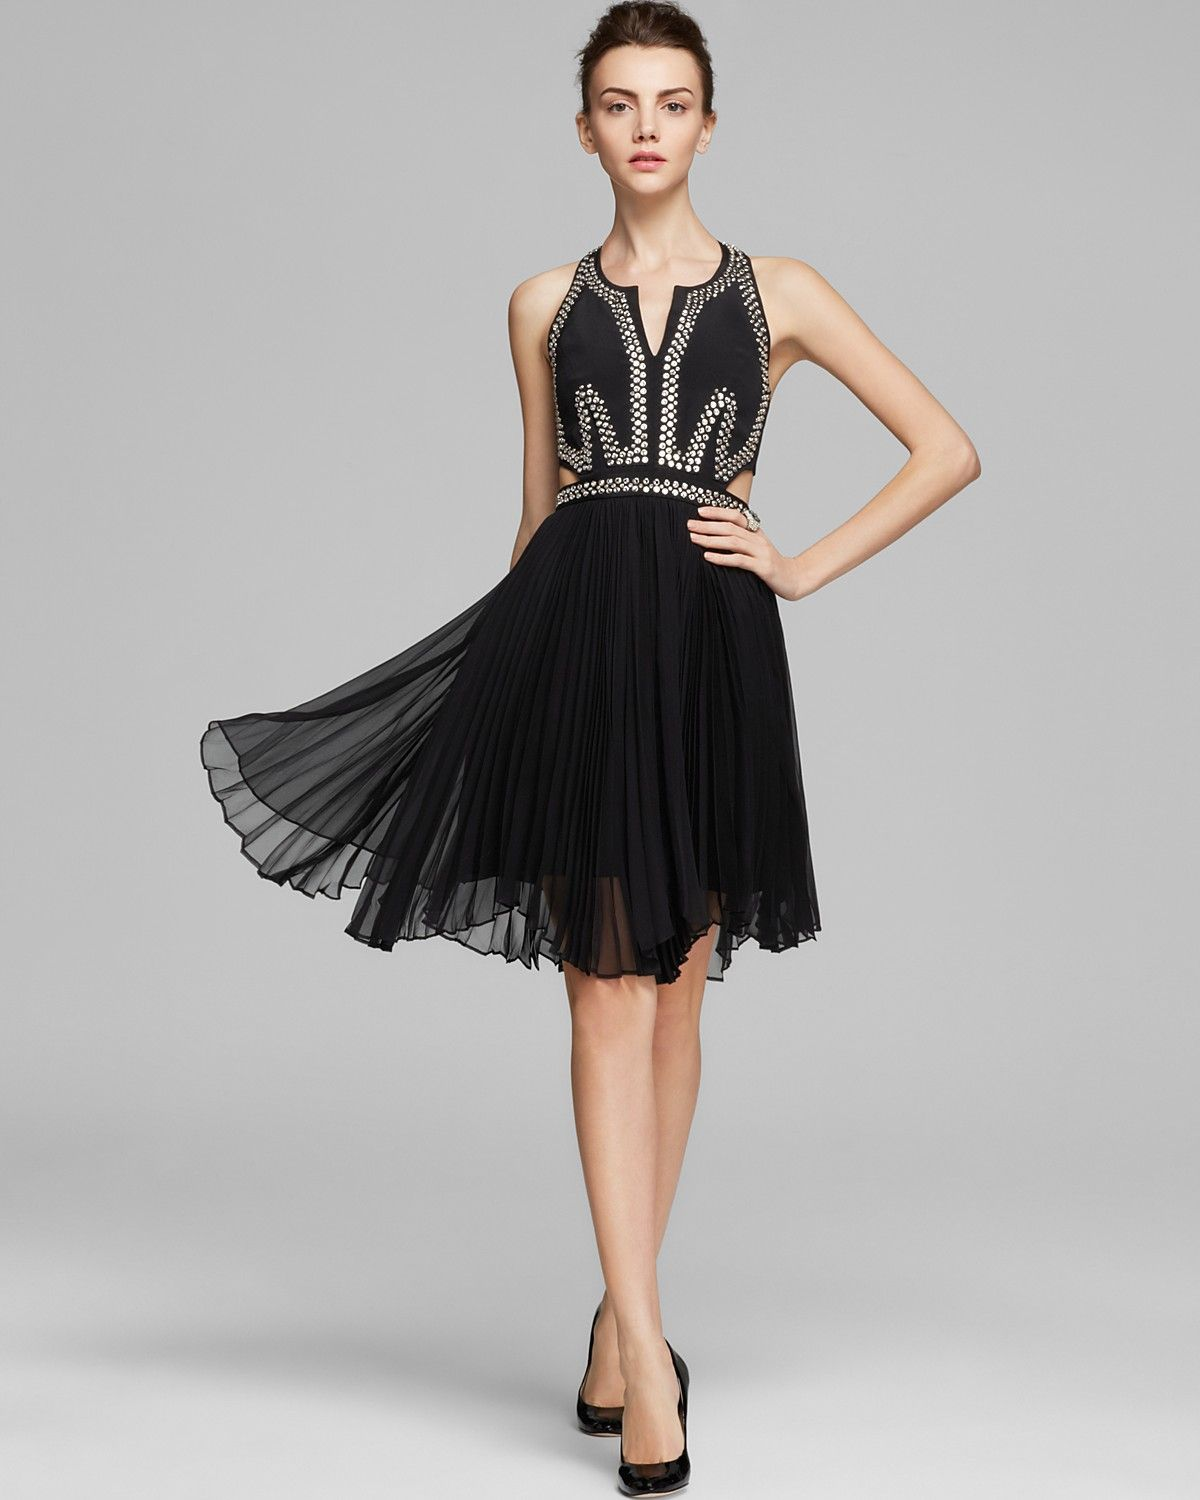 Rebecca taylor dress embellished with cutouts bloomingdales rebecca taylor dress embellished with cutouts bloomingdales ombrellifo Image collections